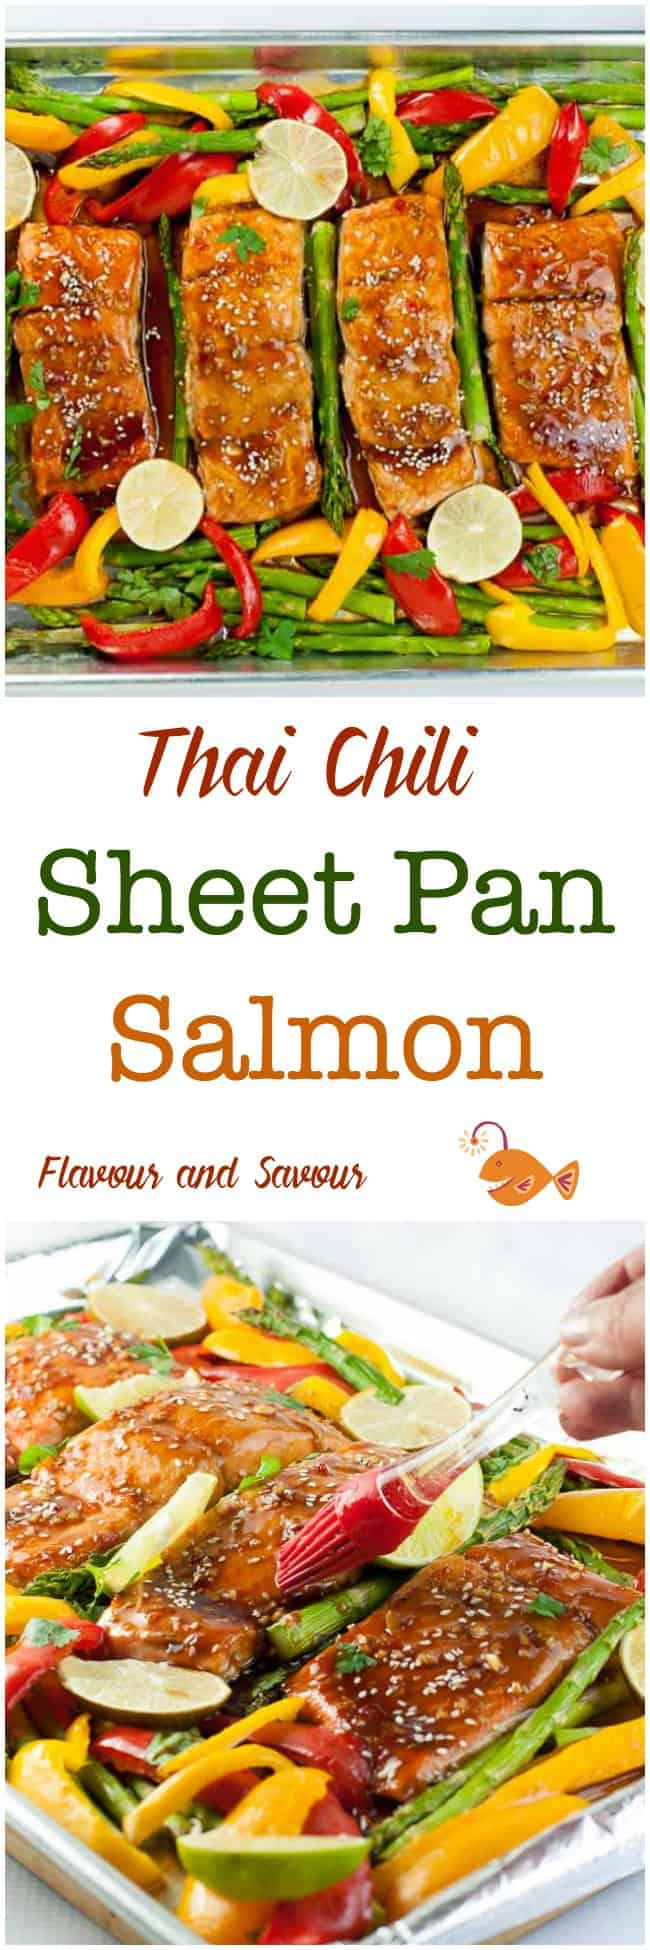 What's not to love? This Thai Chili Sheet Pan Salmon needs minimal preparation, easy clean-up, and a healthy, flavourful supper all baked on one pan in less than 20 minutes. #SheetPan #salmon #asparagus #peppers